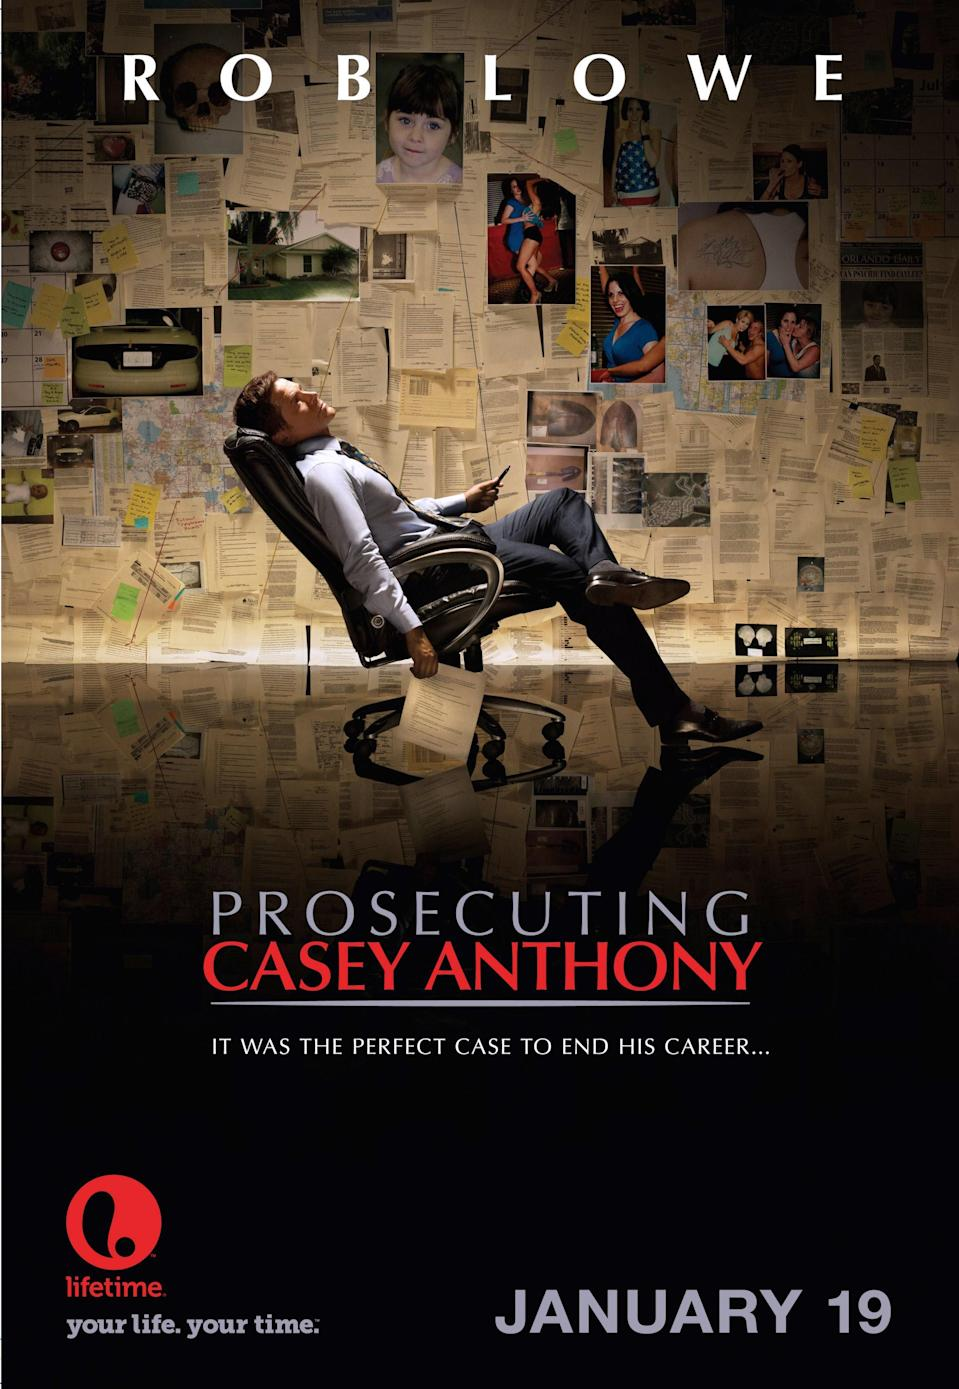 """<p>The trial of Casey Anthony for the murder of her daughter, Caylee, was a media firestorm back in 2011. (I remember watching it in real time!) In this Lifetime movie, we see it from the perspective of the prosecutor (Rob Lowe) responsible for building evidence against her. </p> <p><a href=""""https://www.amazon.com/Prosecuting-Casey-Anthony-Rob-Lowe/dp/B00DM0X9IK/ref=sr_1_1?dchild=1&keywords=Prosecuting+Casey+Anthony&qid=1595444491&sr=8-1"""" rel=""""nofollow noopener"""" target=""""_blank"""" data-ylk=""""slk:Buy on Amazon Prime Video"""" class=""""link rapid-noclick-resp""""><em>Buy on Amazon Prime Video</em></a></p>"""